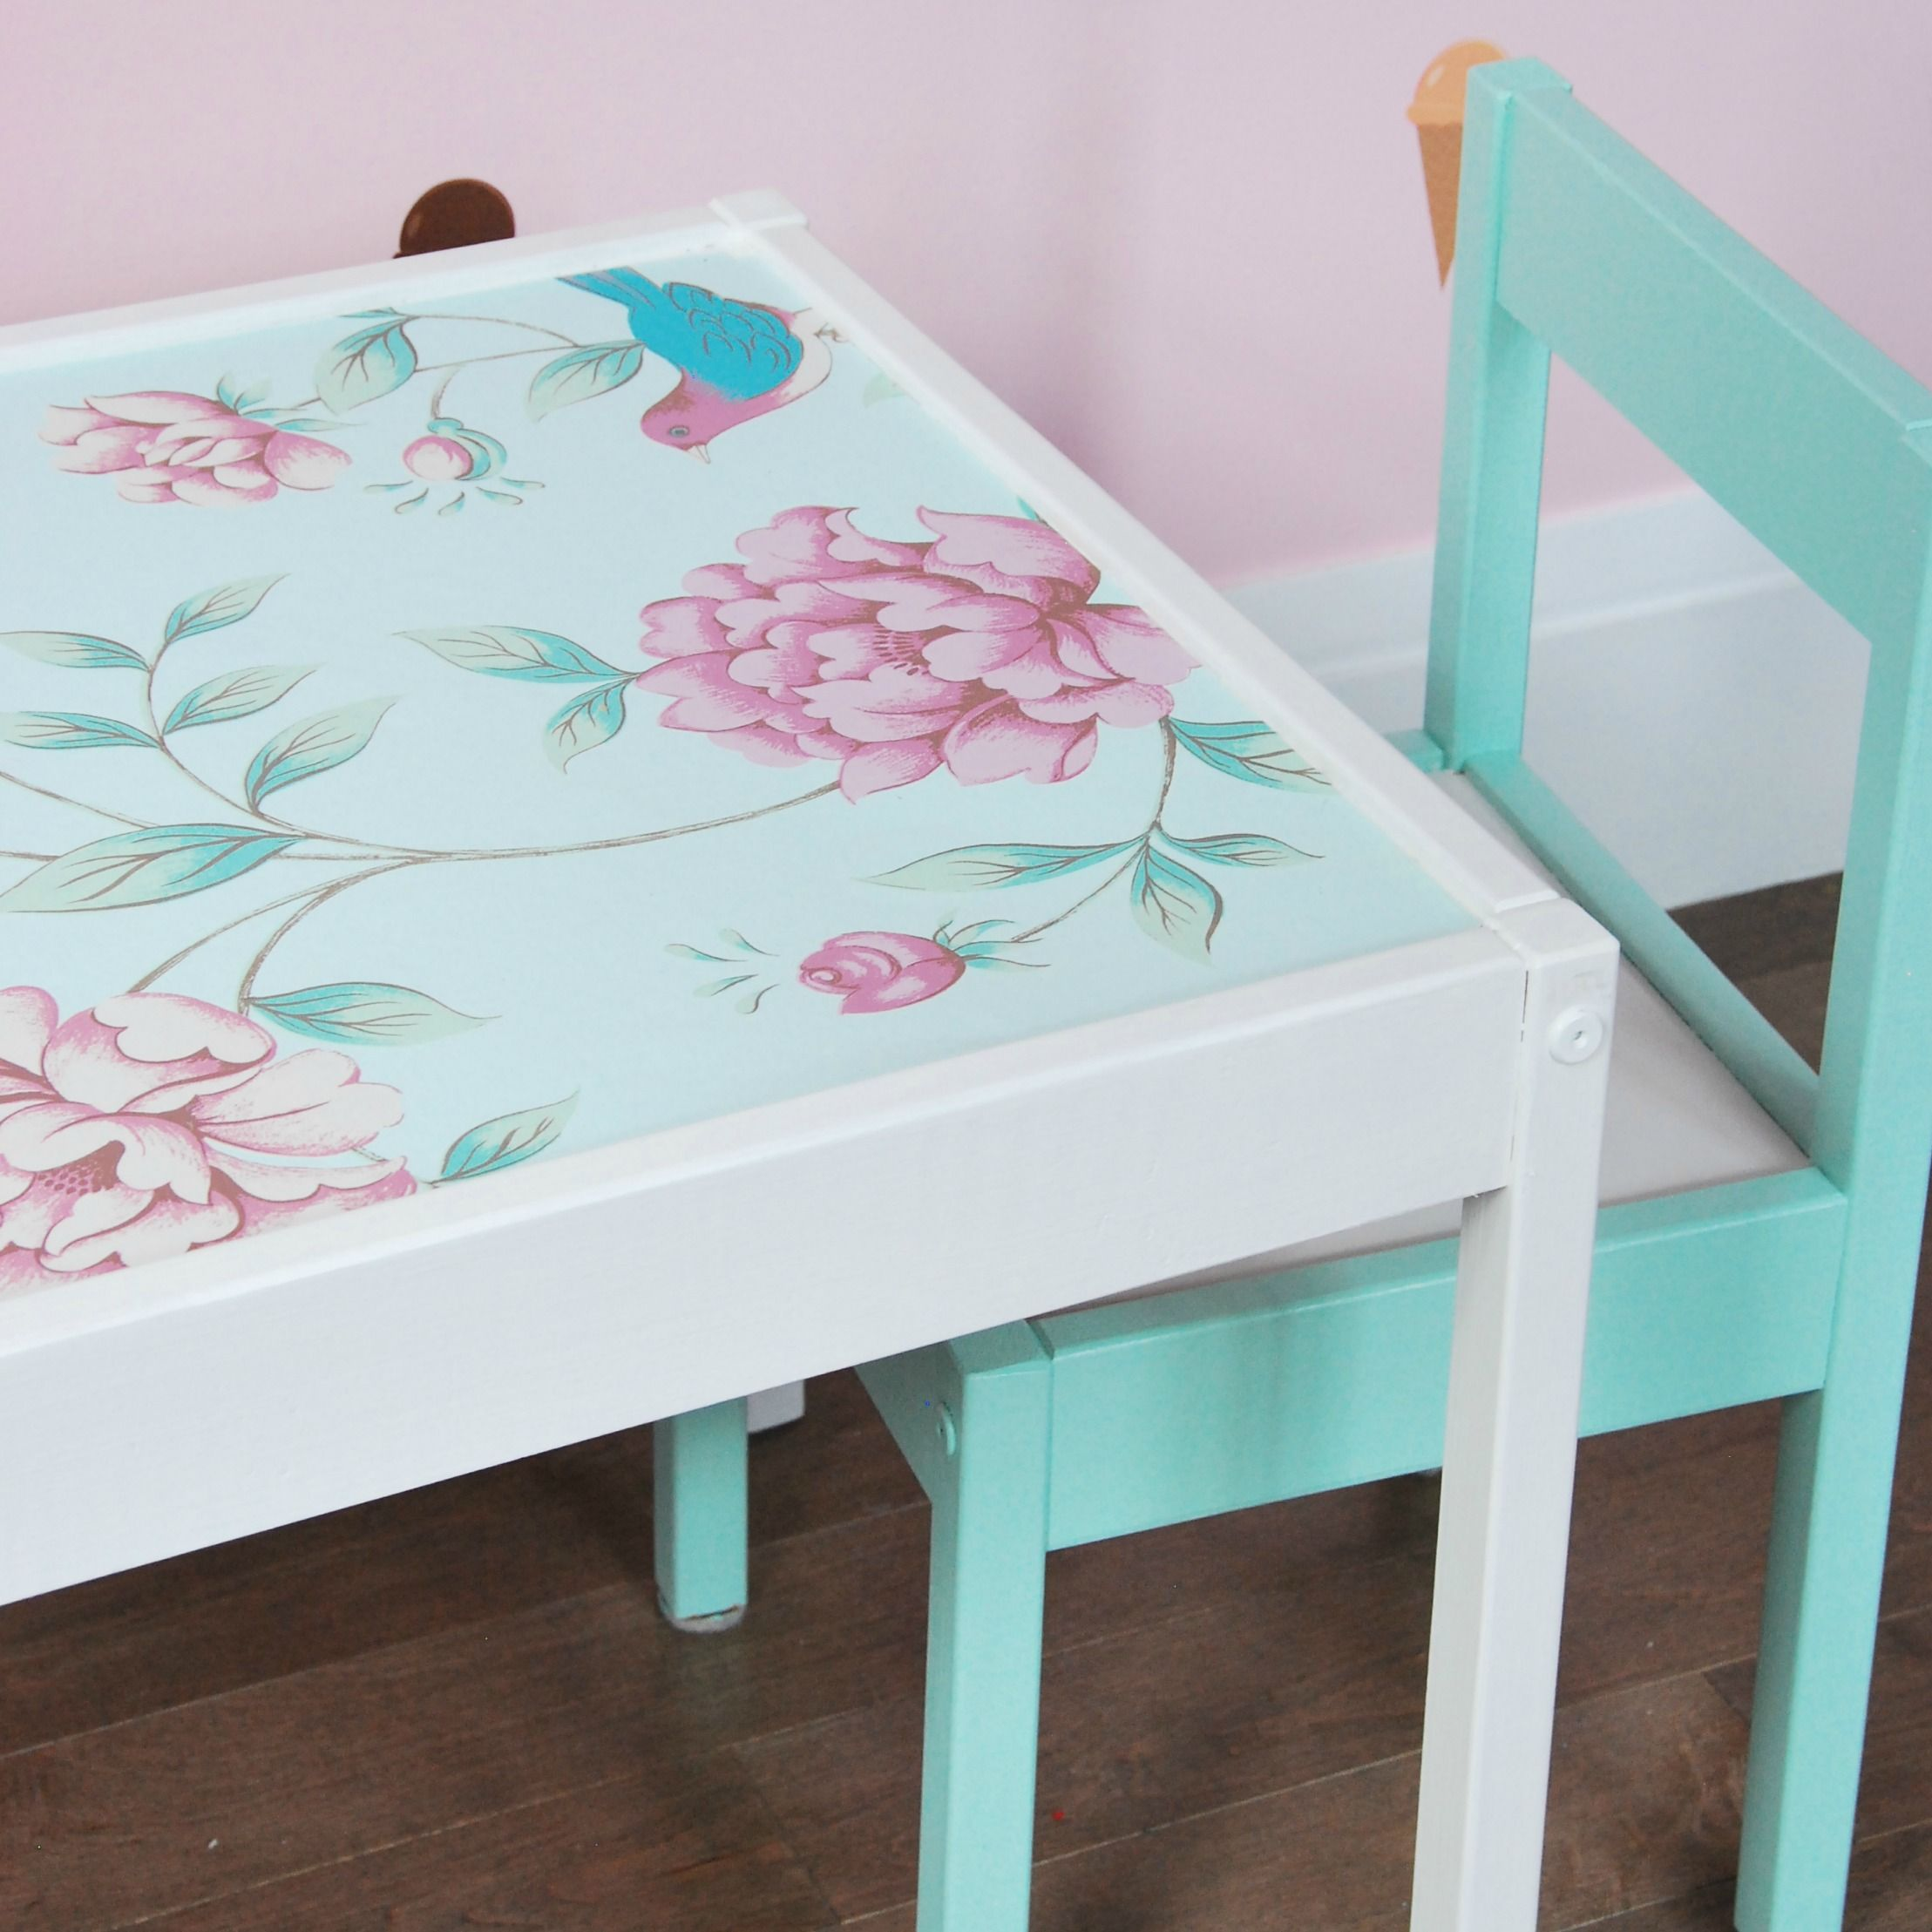 Child table and chairs ikea - Ikea Hack Latt Table And Chairs For Kids